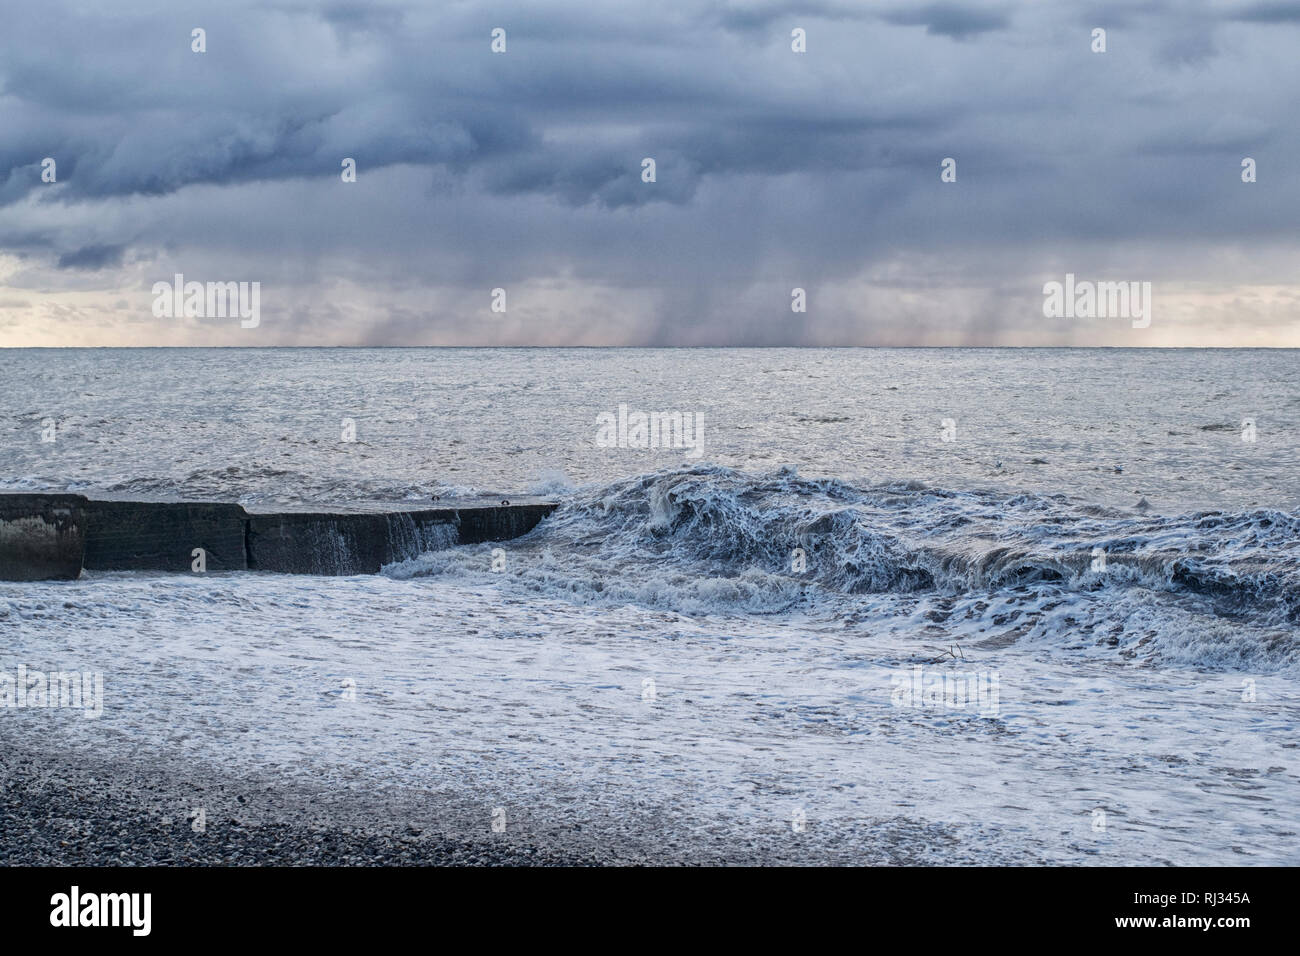 Seascape with a concrete pier during a storm in the rain Stock Photo